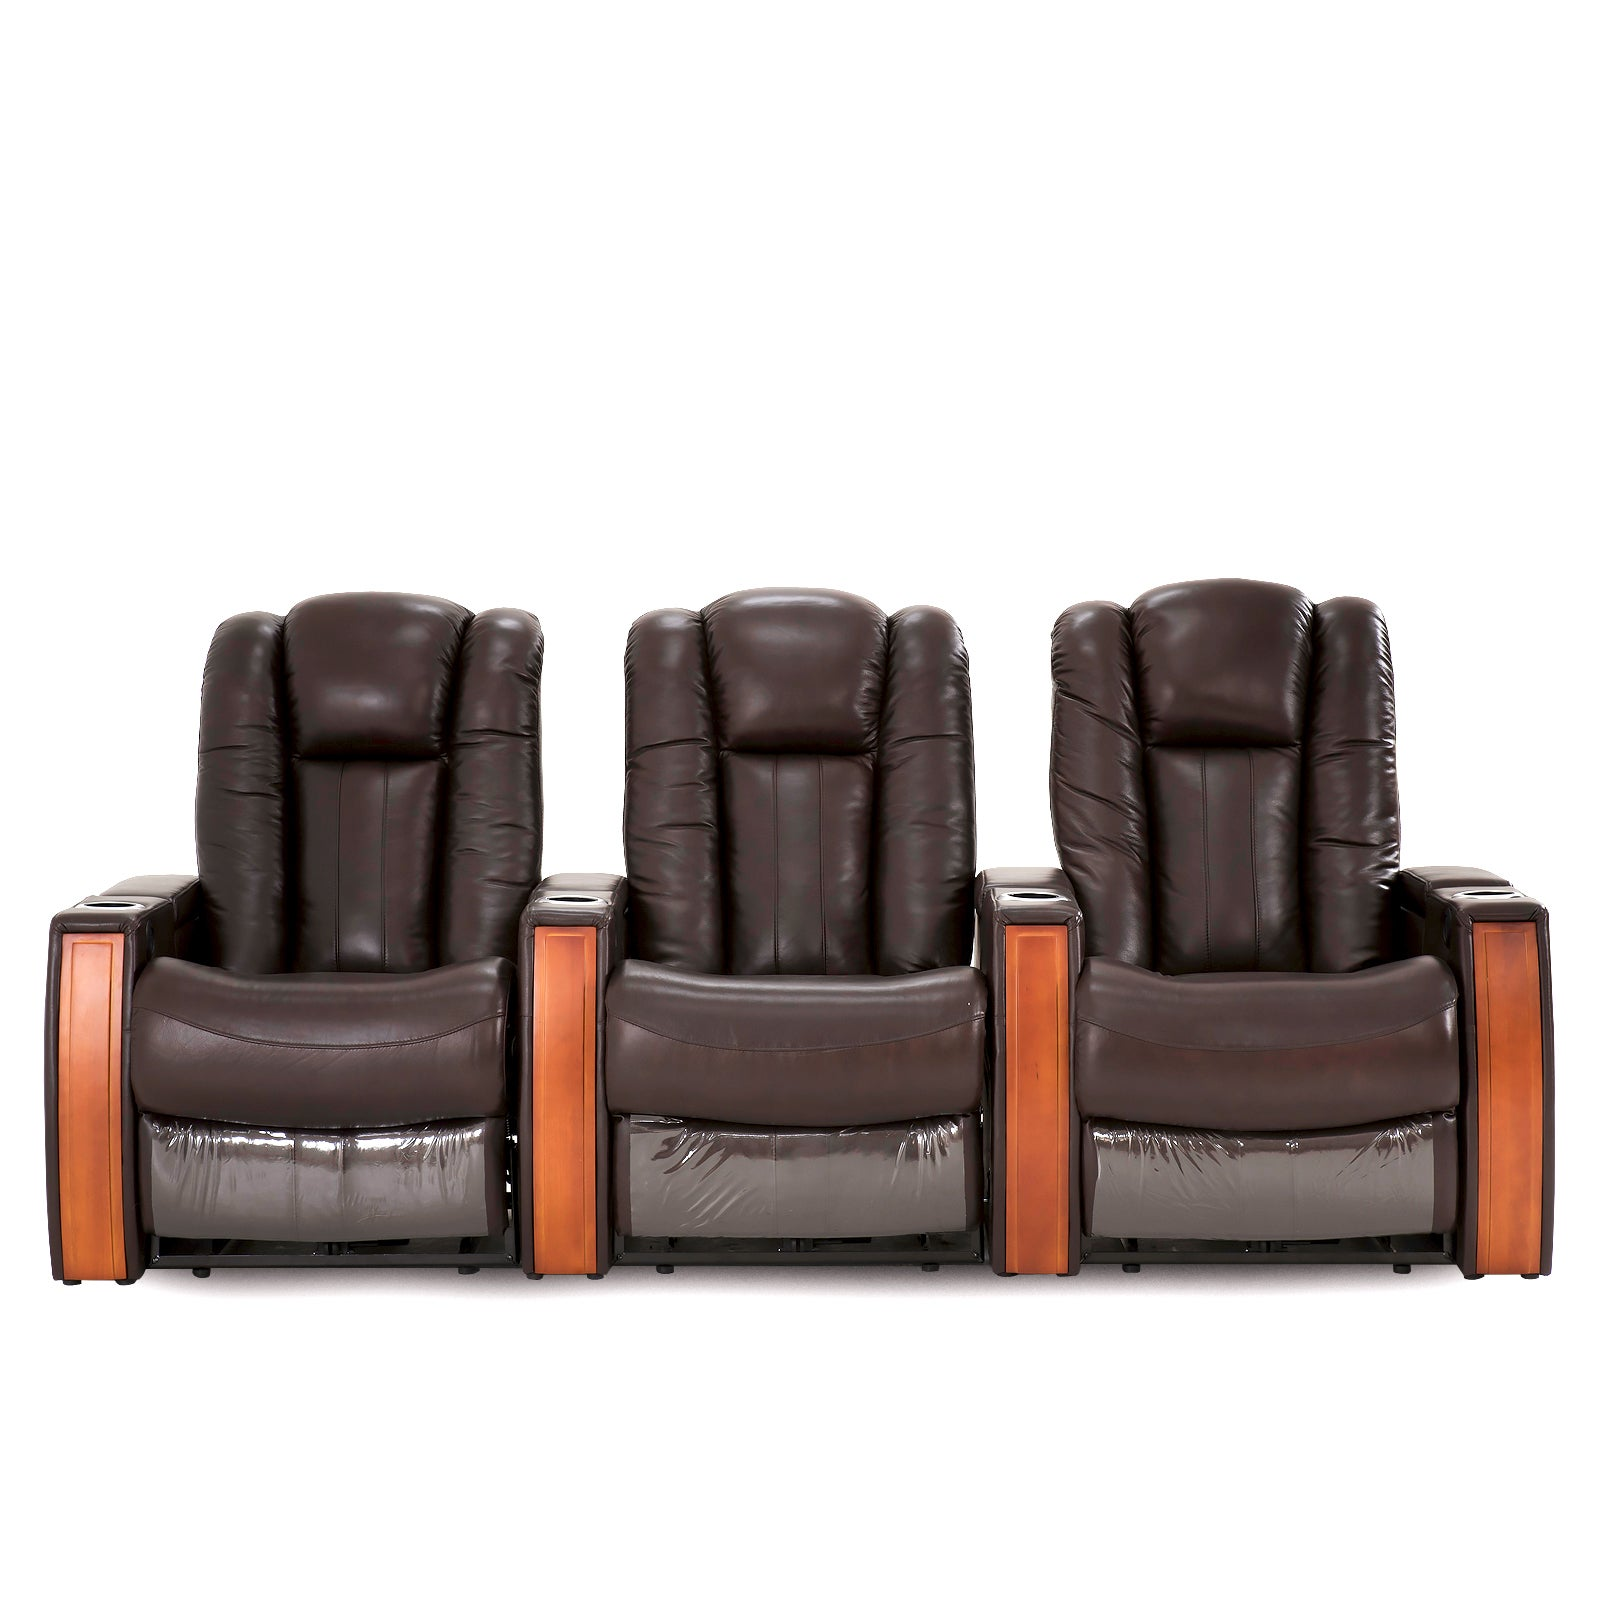 Awesome Executive Wide Seat 3 Seater Electric Recliner Spiritservingveterans Wood Chair Design Ideas Spiritservingveteransorg